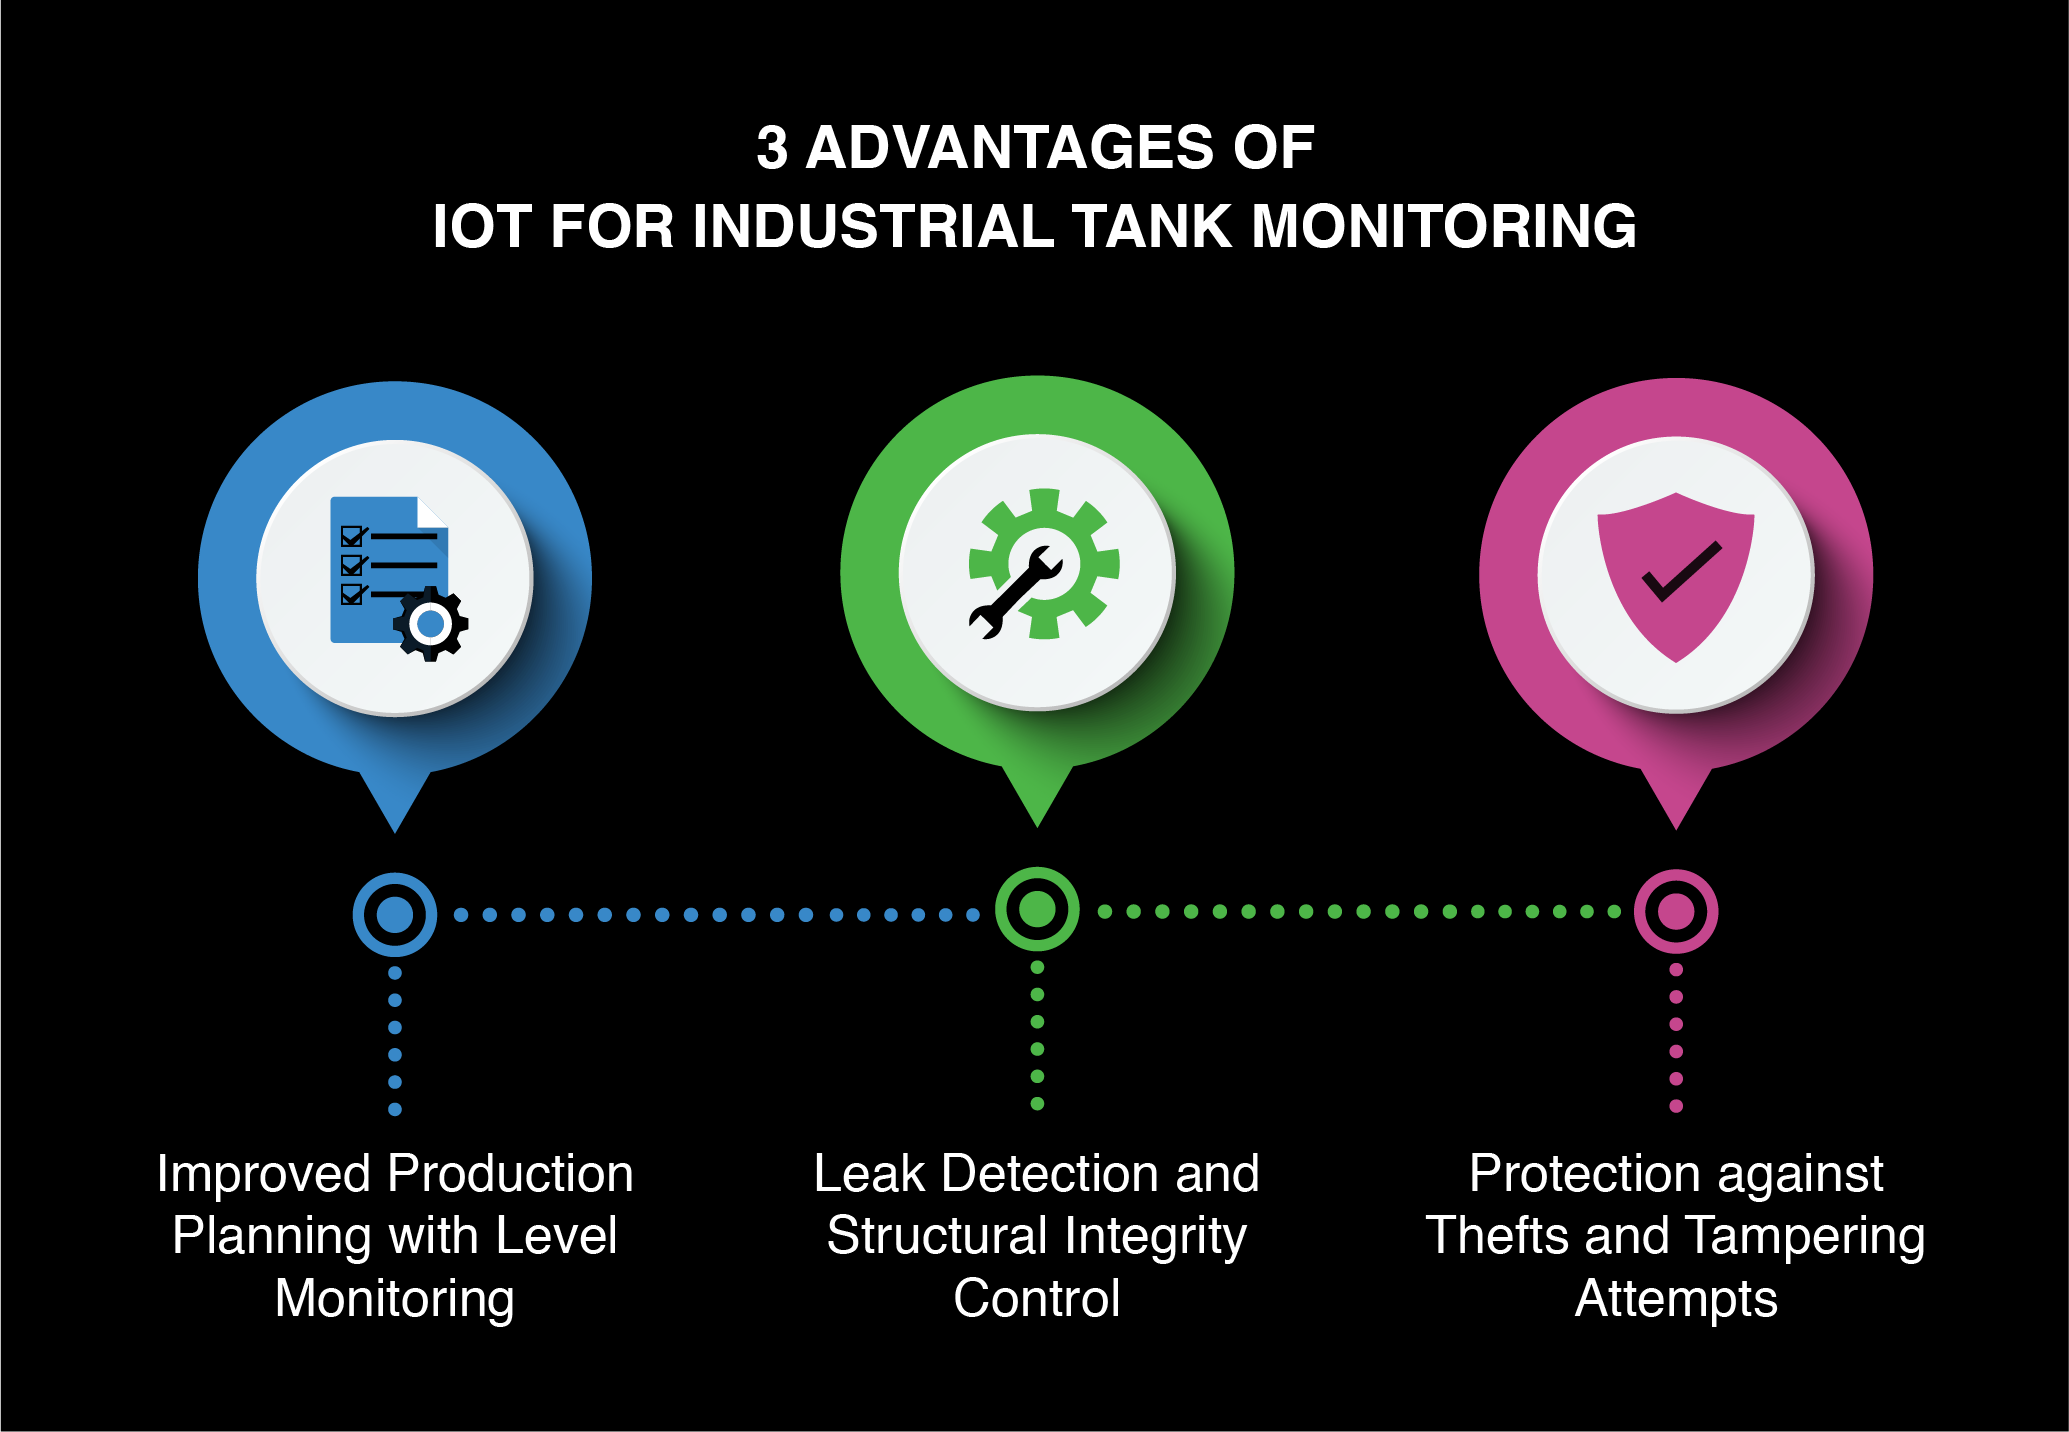 IoT for tank monitoring